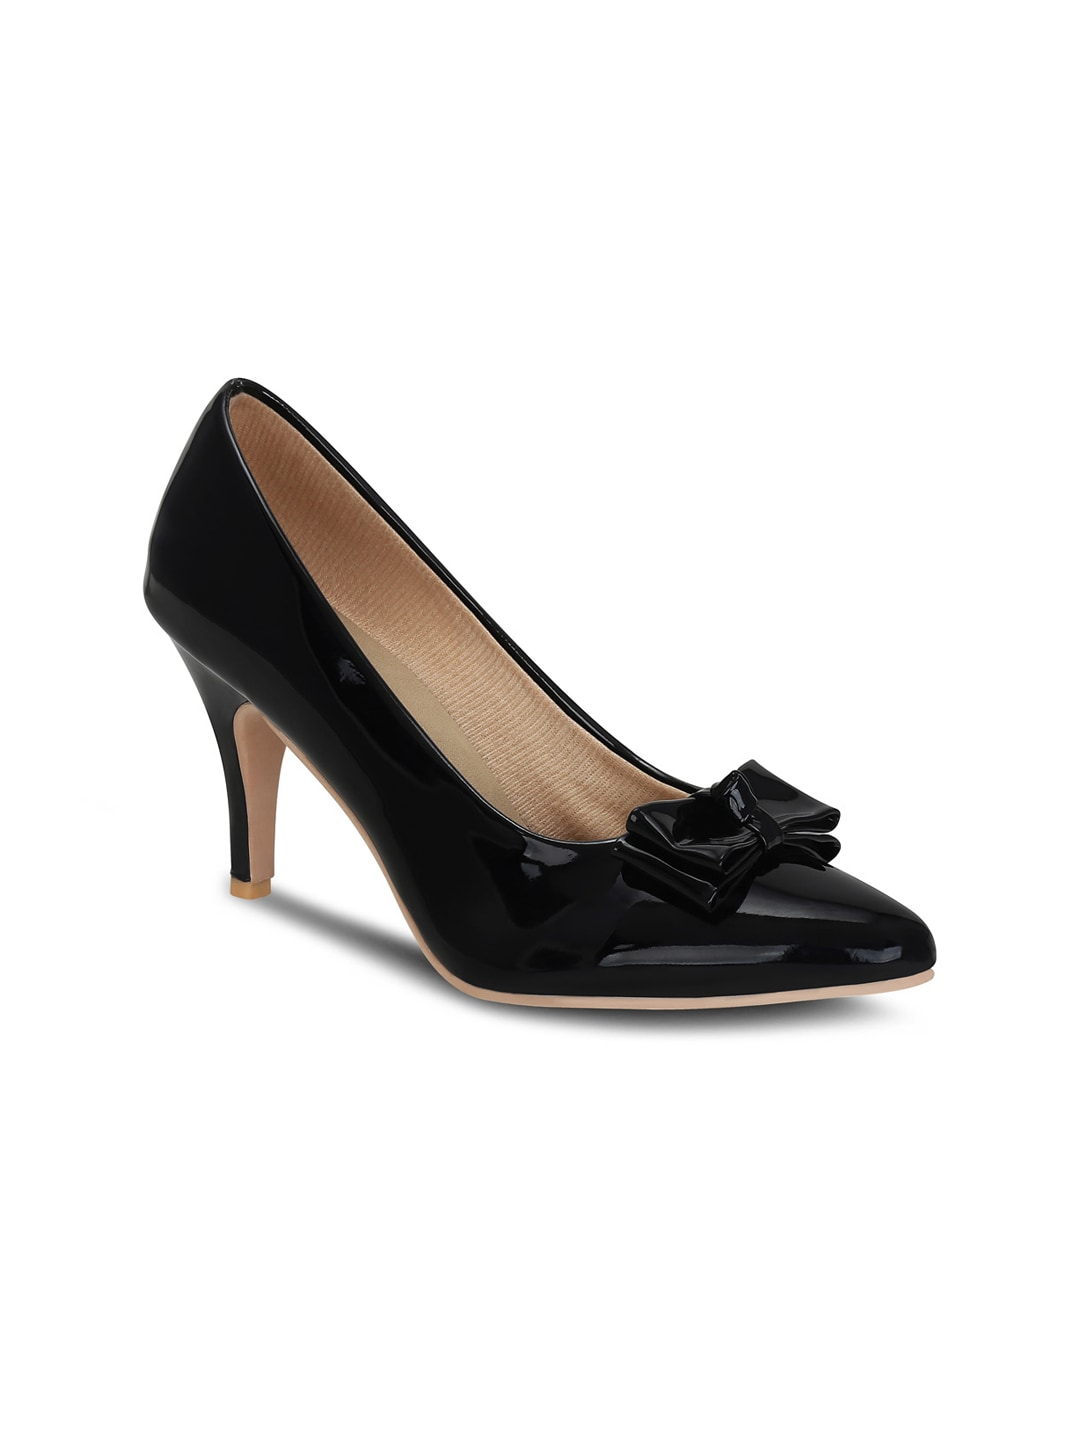 4bab78cb392 Pumps Heels - Buy Pumps Heels Online in India